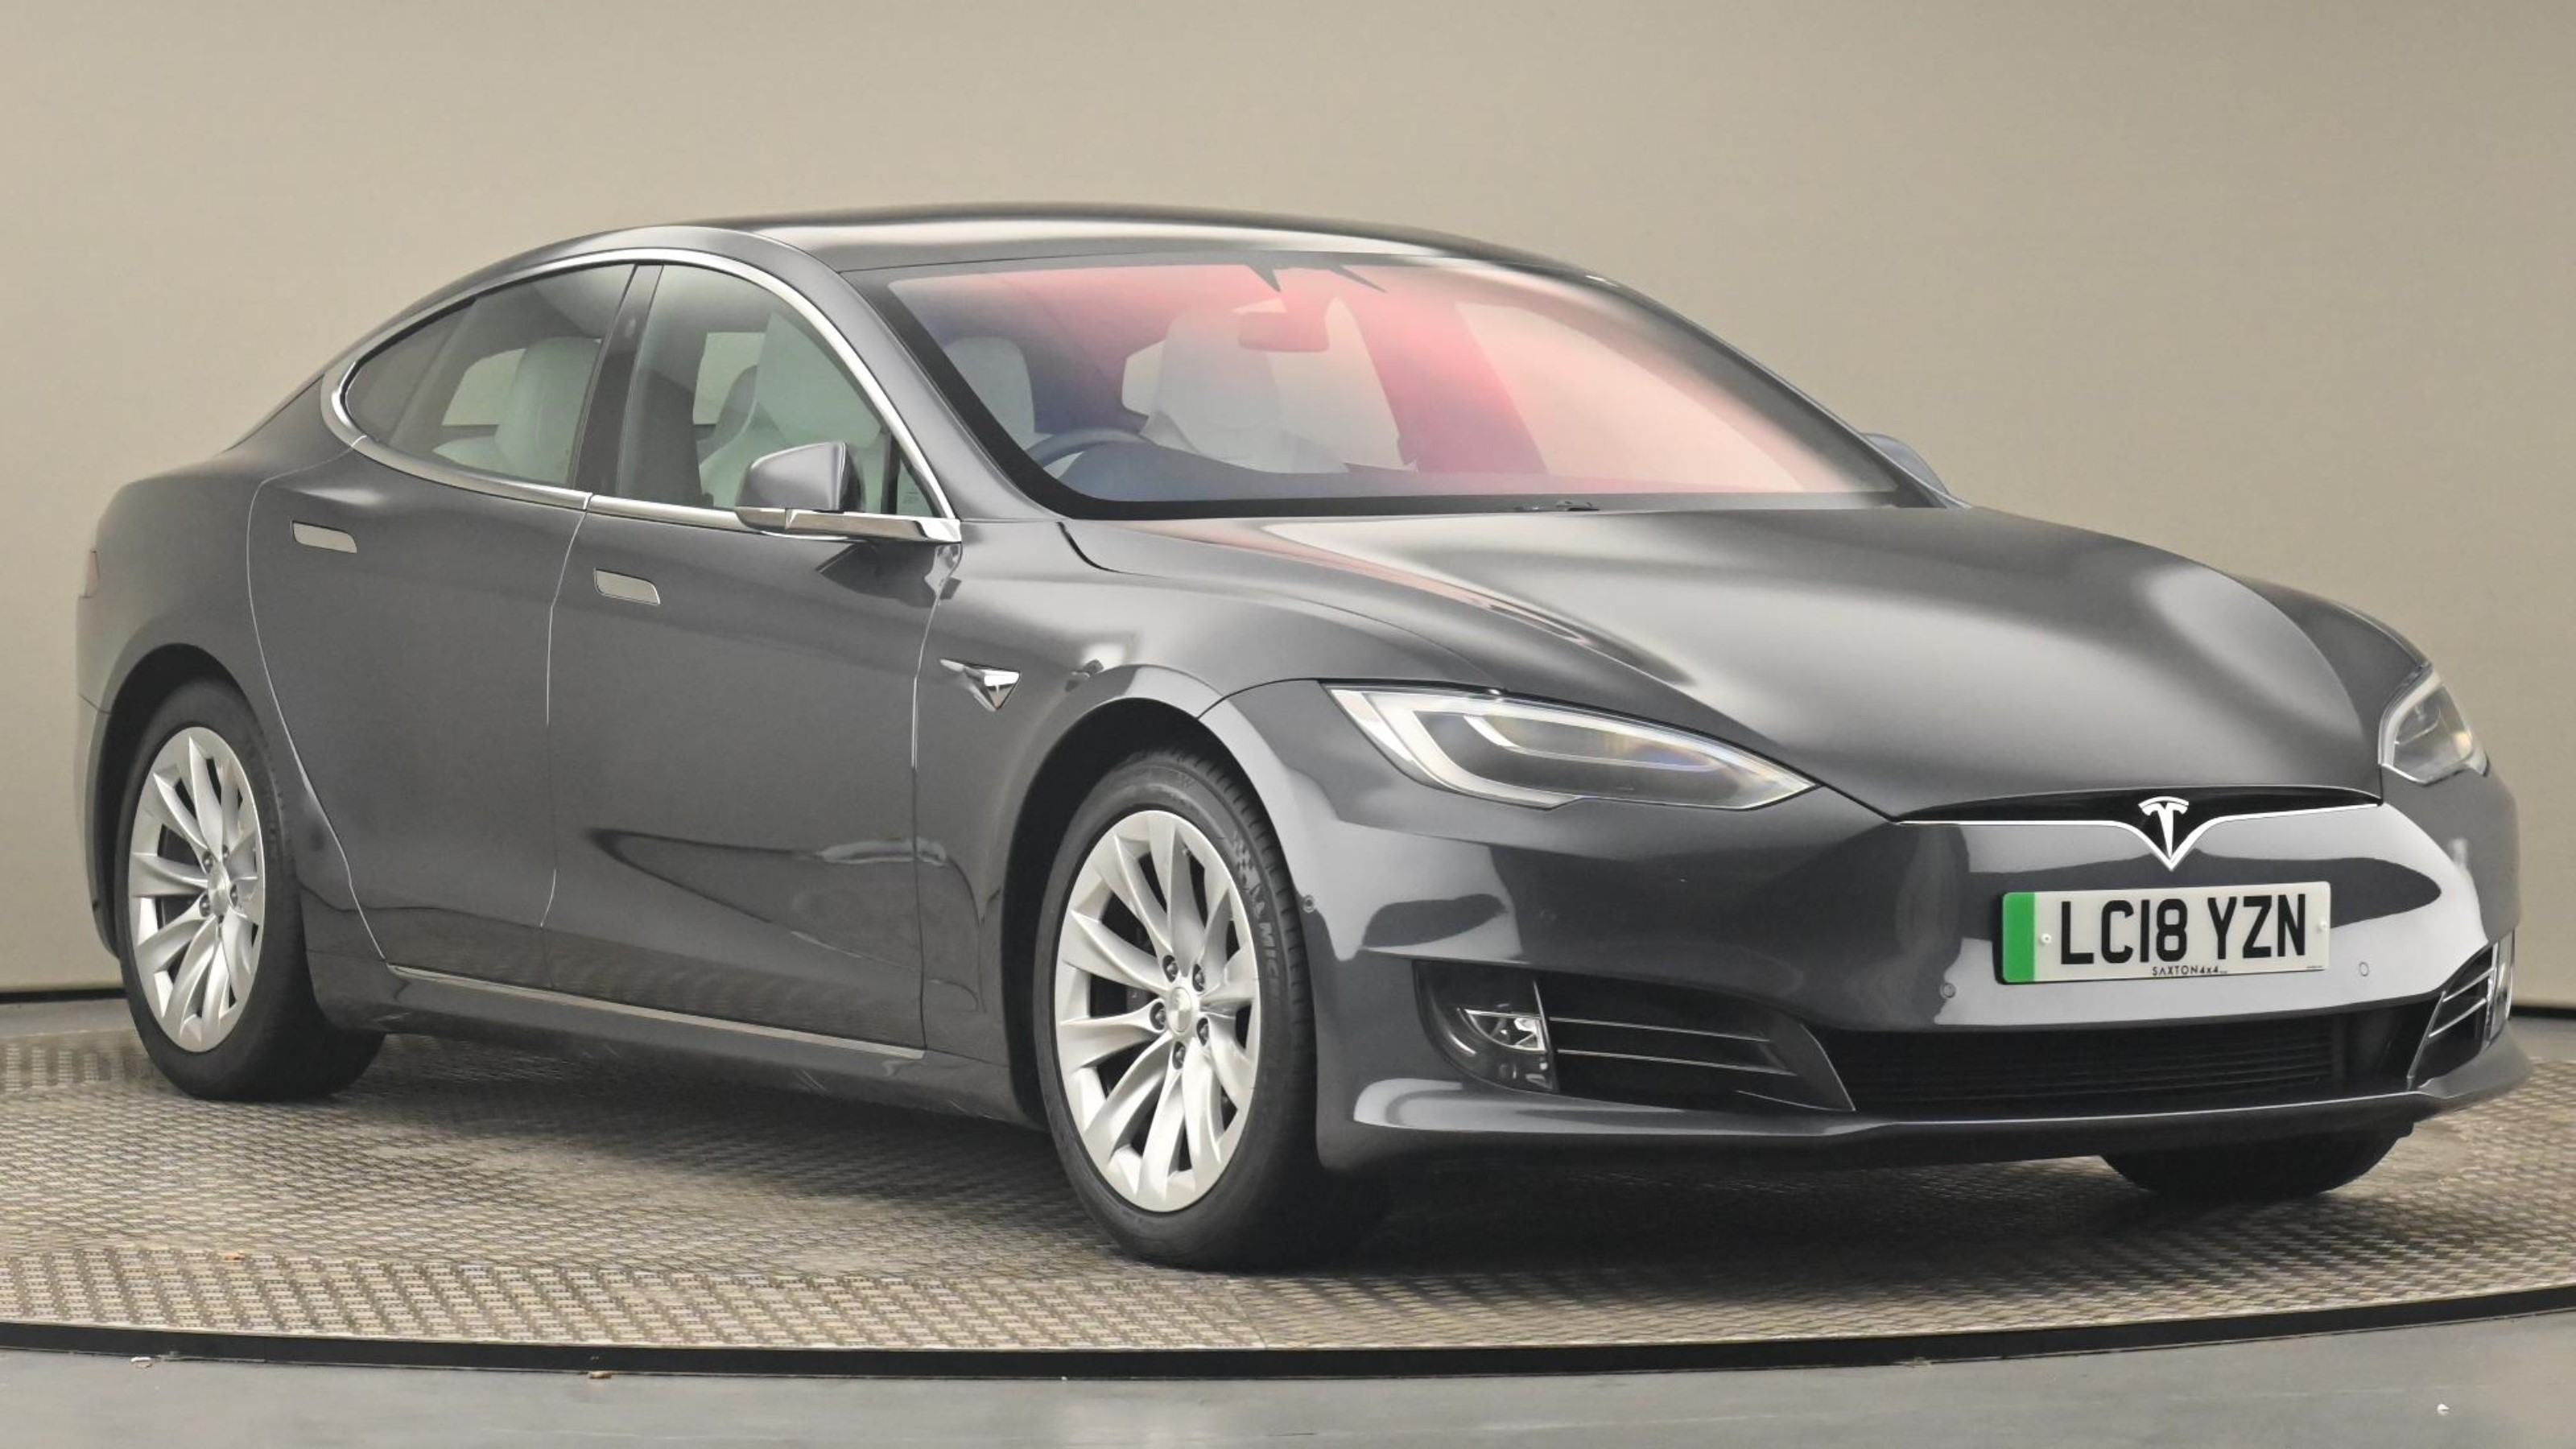 Used 2018 Tesla MODEL S 241kW 75kWh Dual Motor 5dr Auto GREY at Saxton4x4